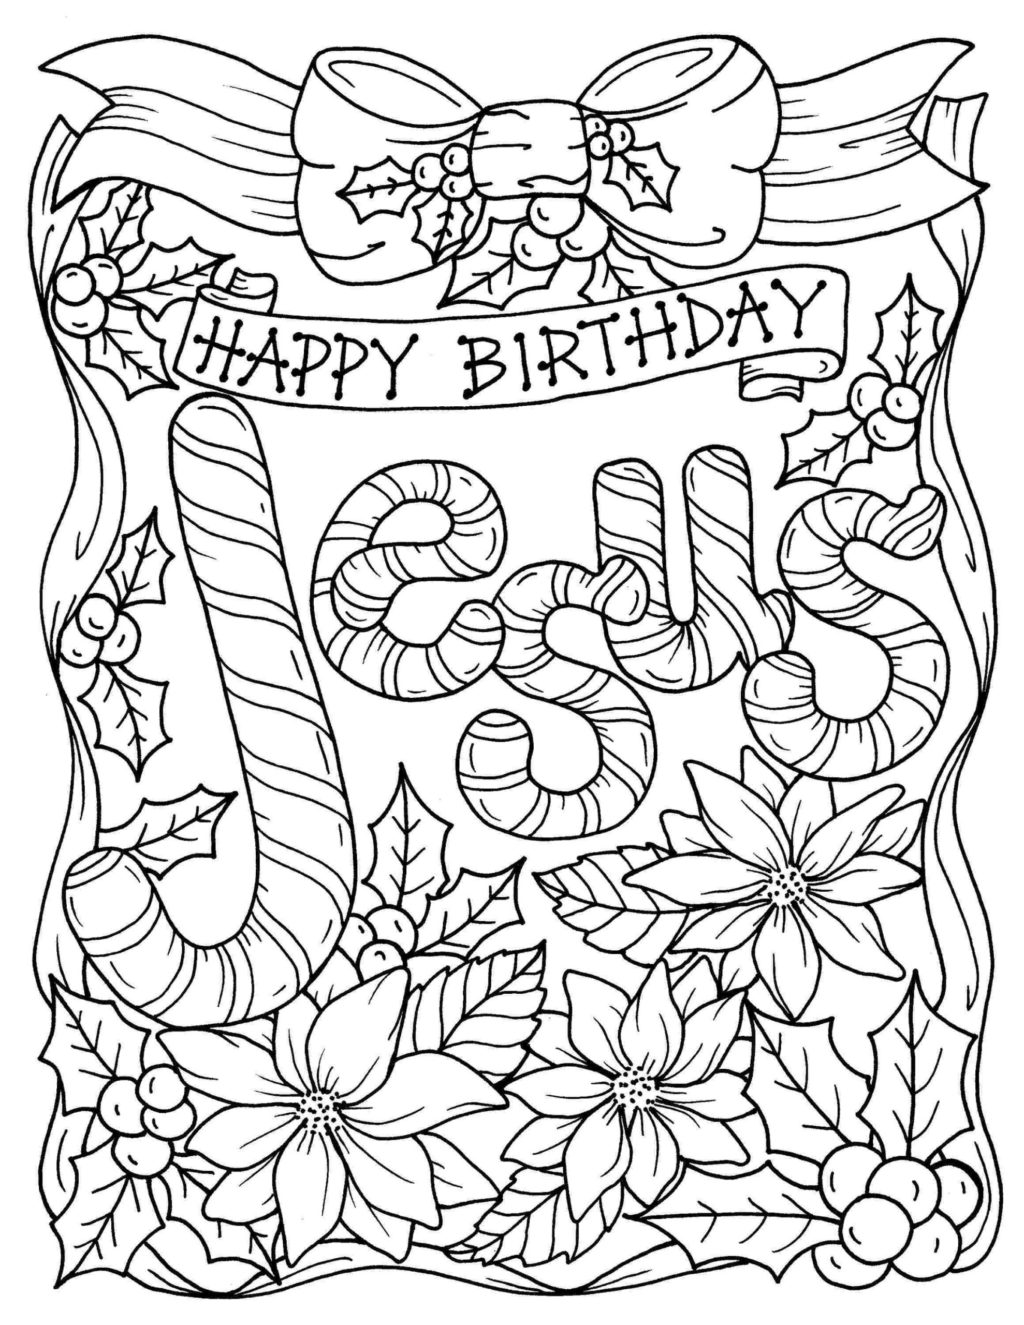 Worksheet ~ Free Printable Bible Christmas Coloring Pin On For The ...